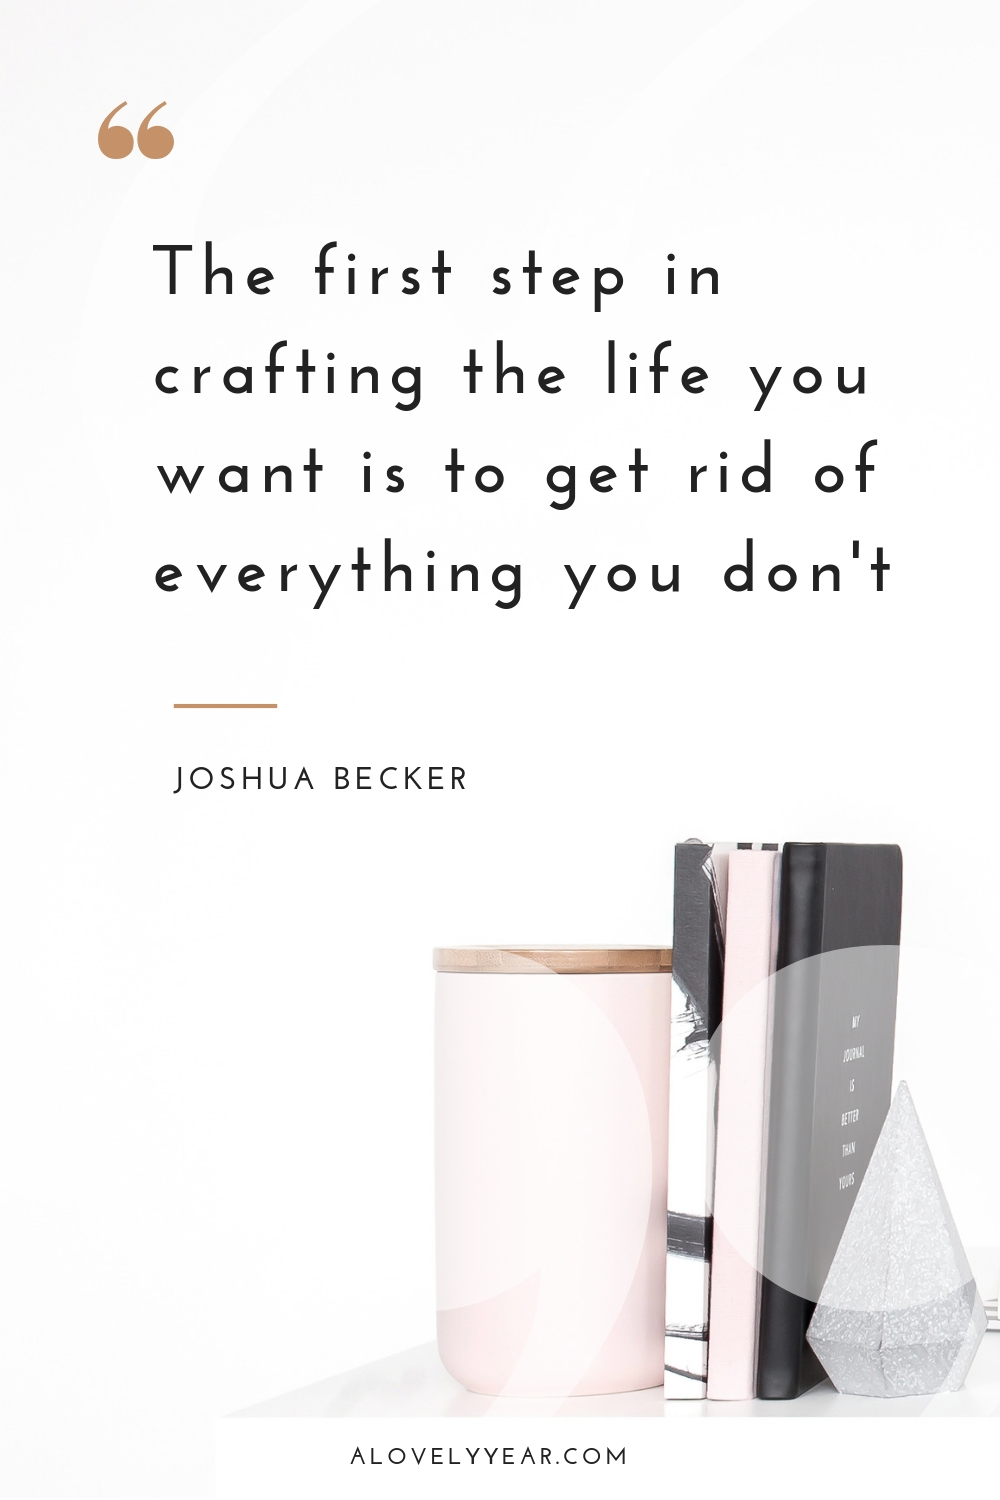 10 Decluttering Quotes to Inspire you into Action   The first step in crafting the life you want is to get rid of everything you don't - Joshua Becker